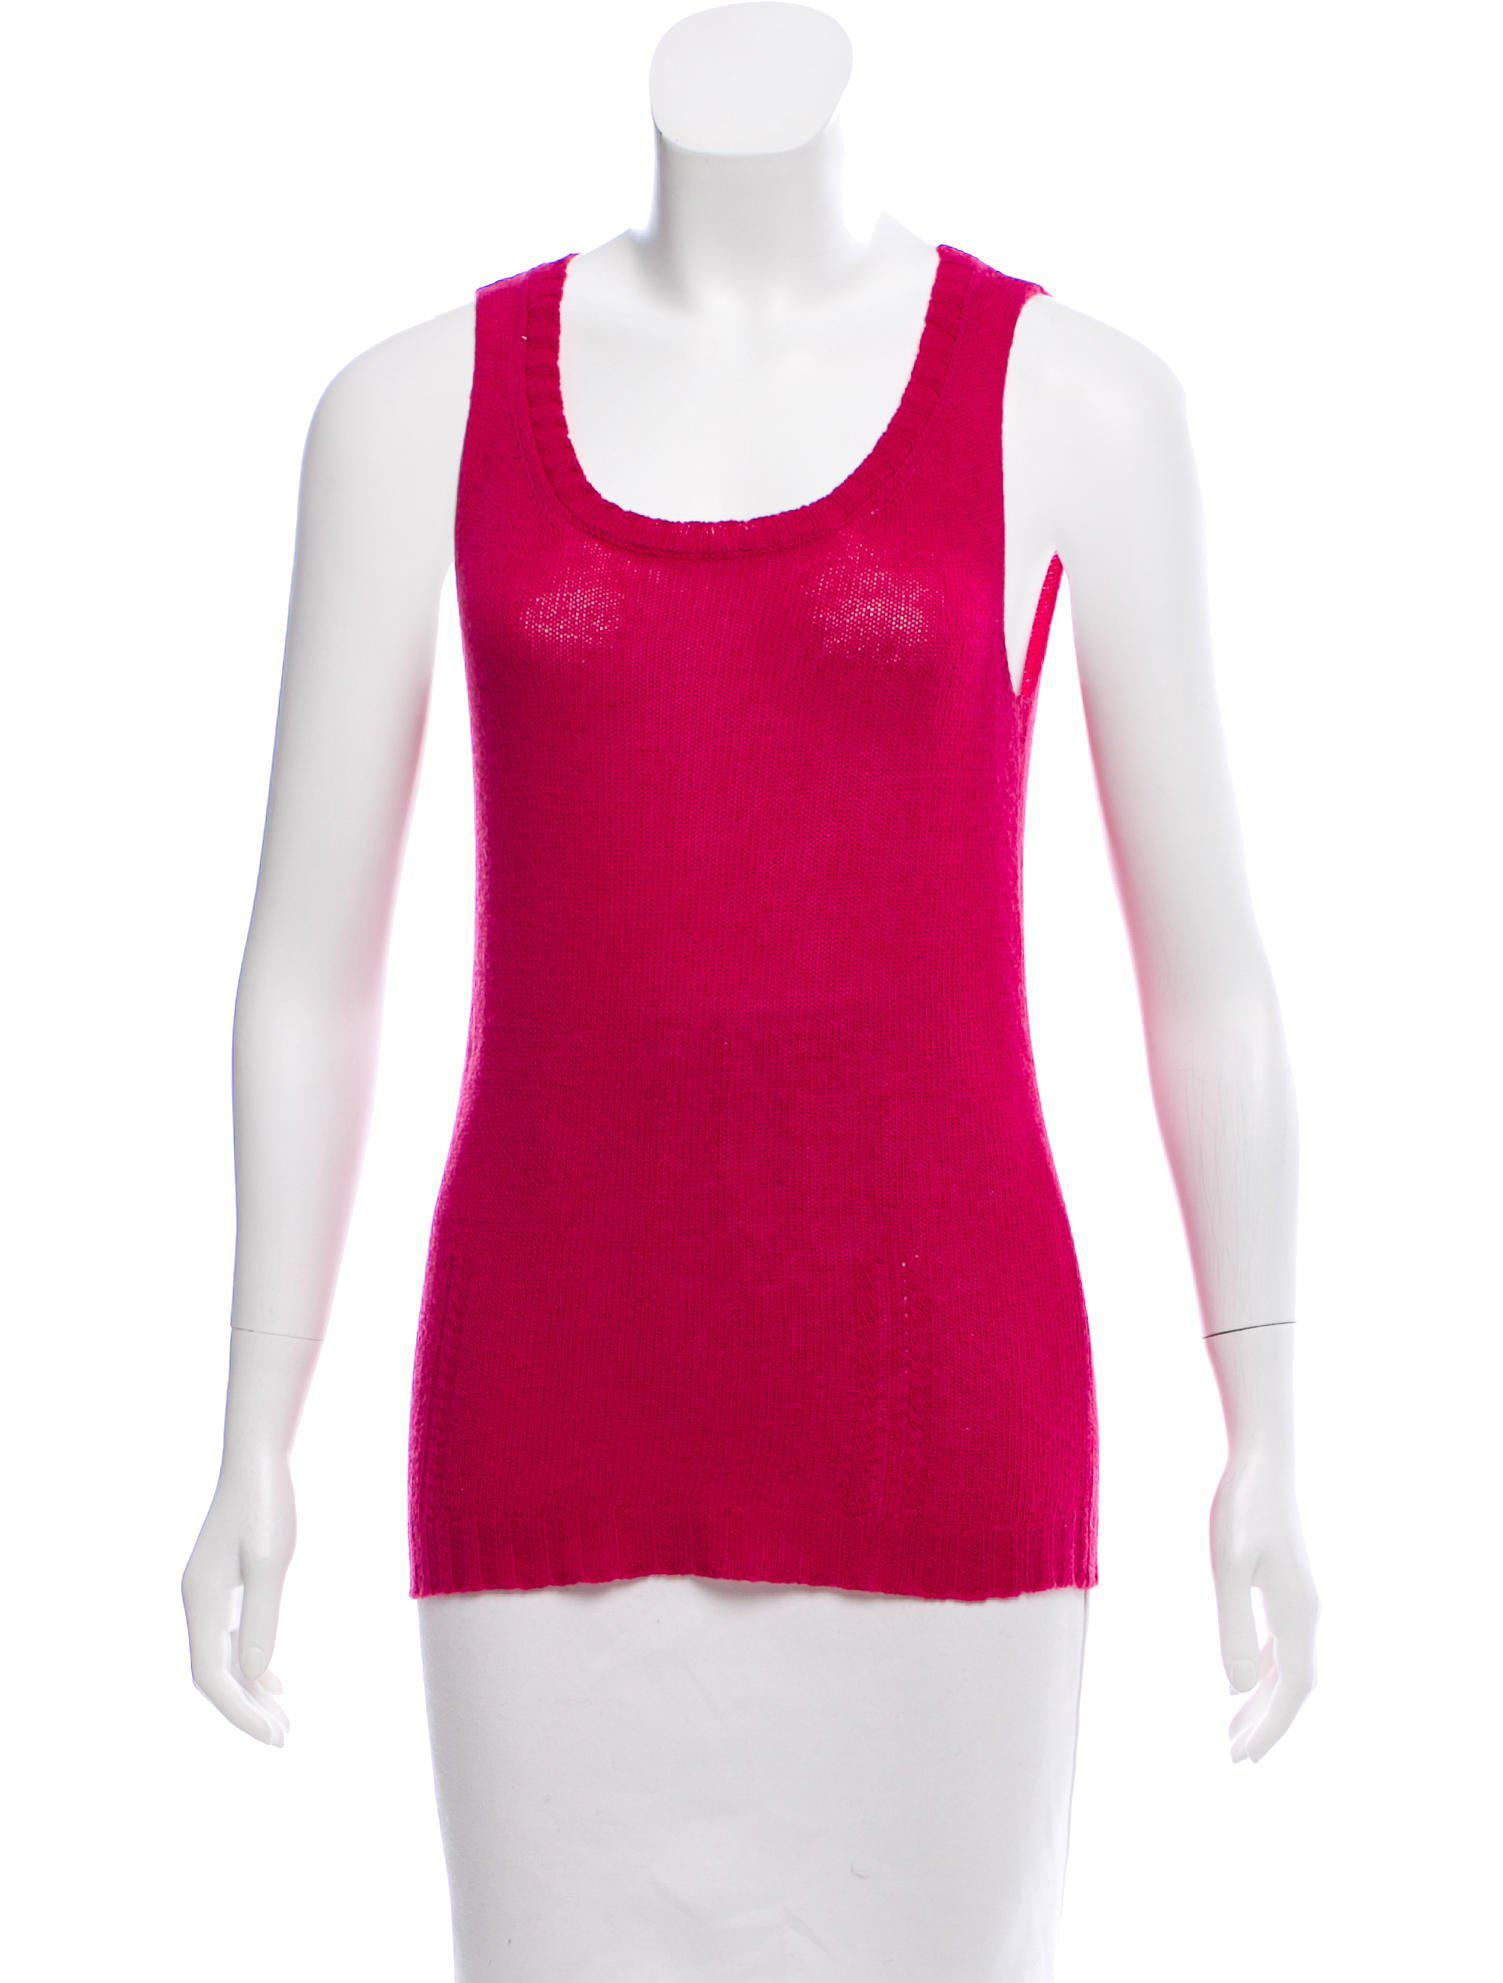 84370a7fba506 Lyst - Nina Ricci Cashmere Sleeveless Top in Pink